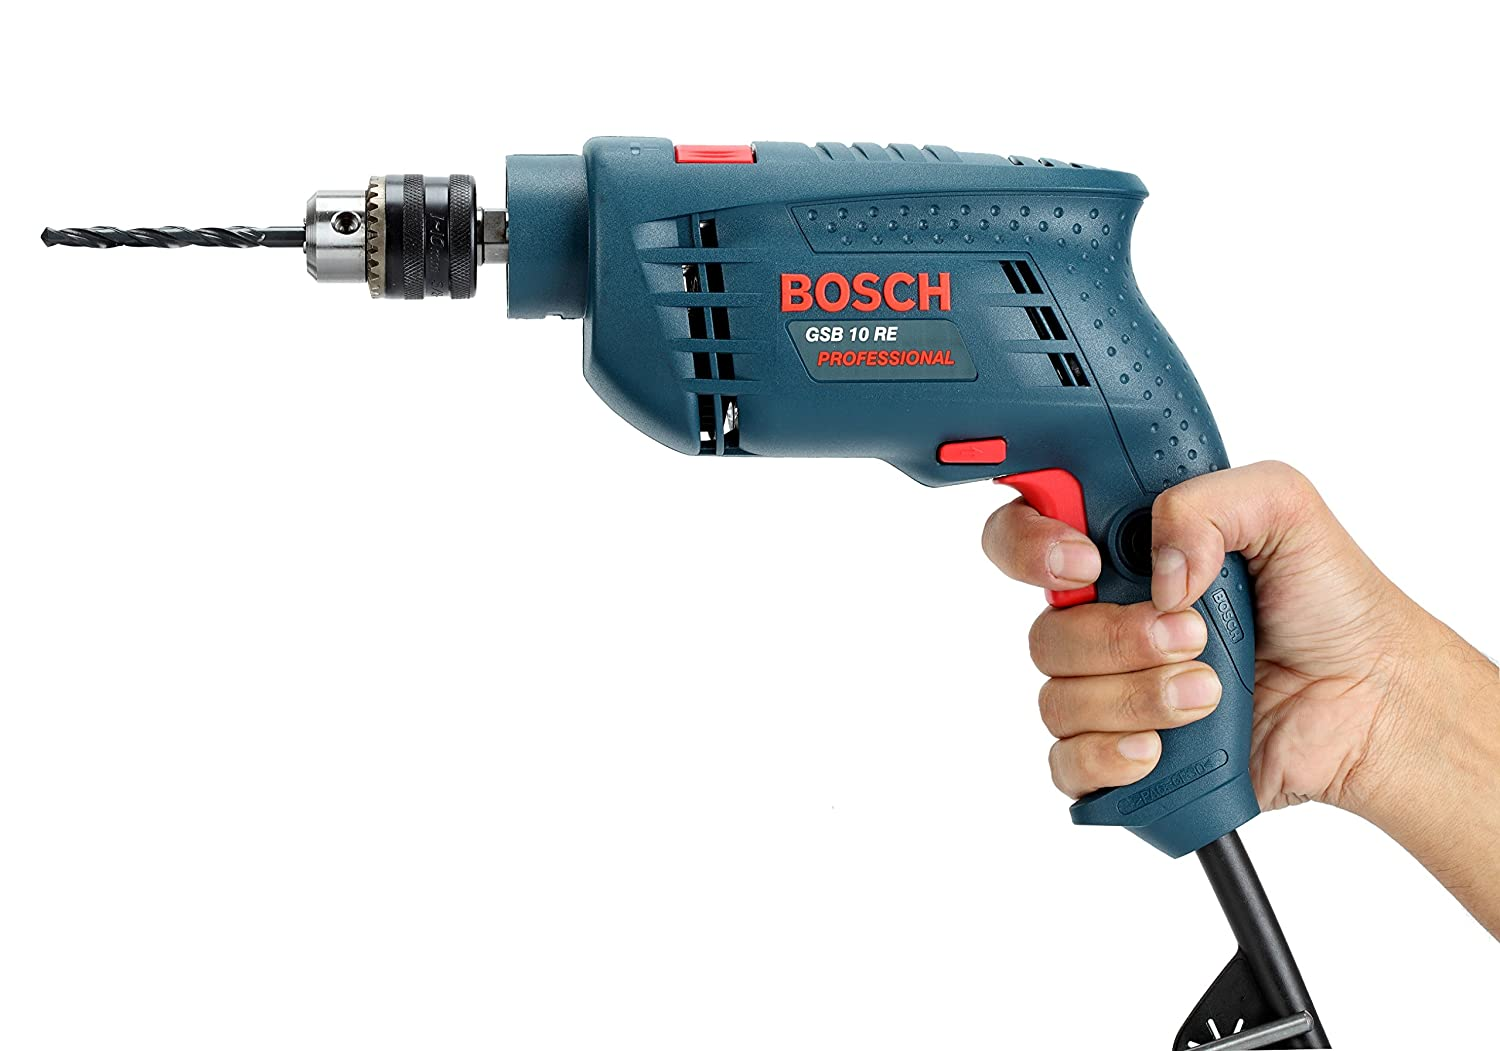 Buy Bosch 06012161F3 GSB 10 RE 500-Watts Professional Impact Drill Online  at Low Prices in India - Amazon.in